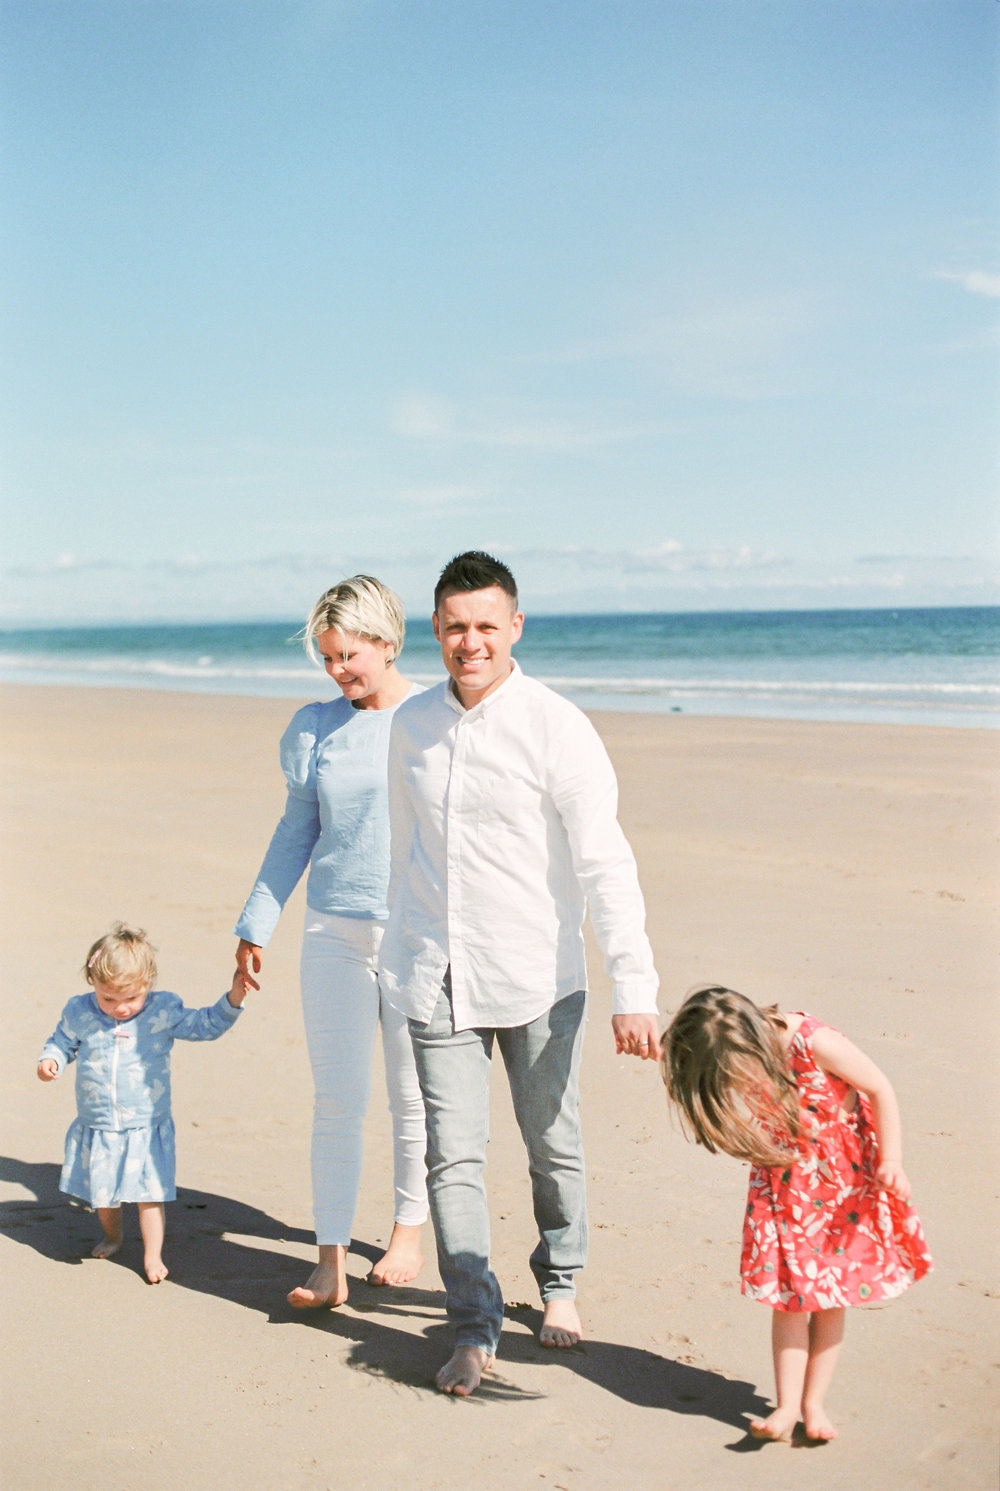 JacquelineAnnePhotography-Christie Family at Tyninghame -95.jpg